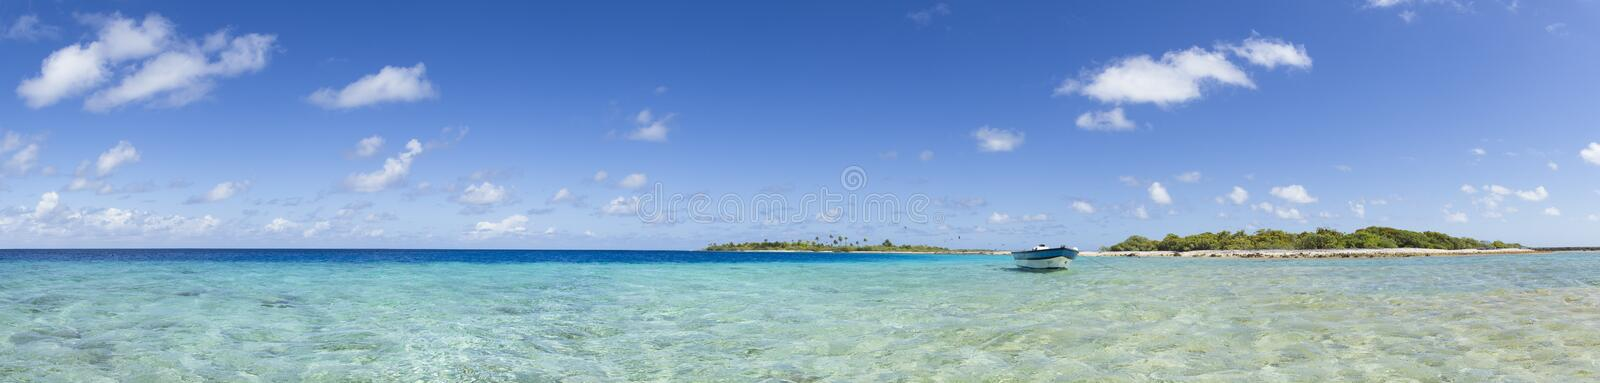 Boat on blue lagoon panoramic view royalty free stock image